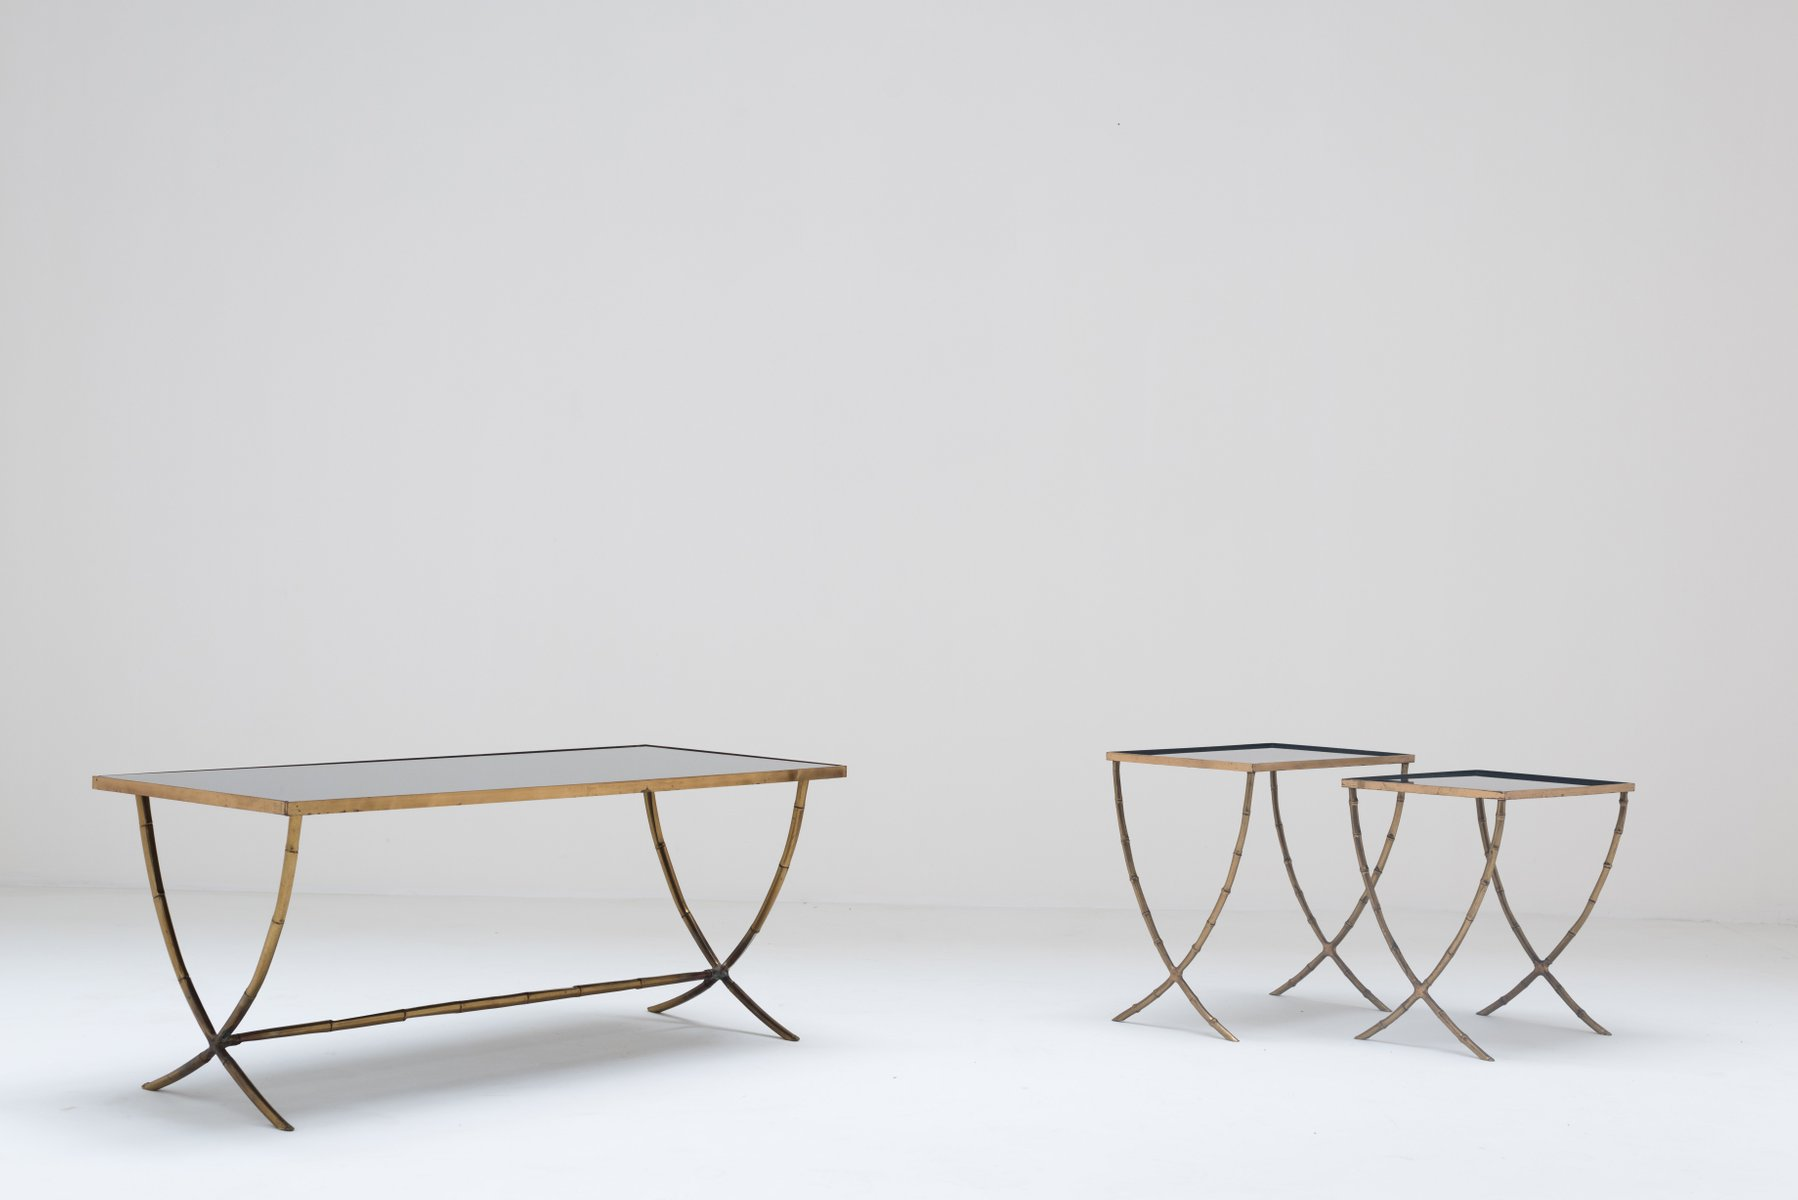 Bronze Coffee Table U0026 Nesting Tables From Maison Baguès, 1959